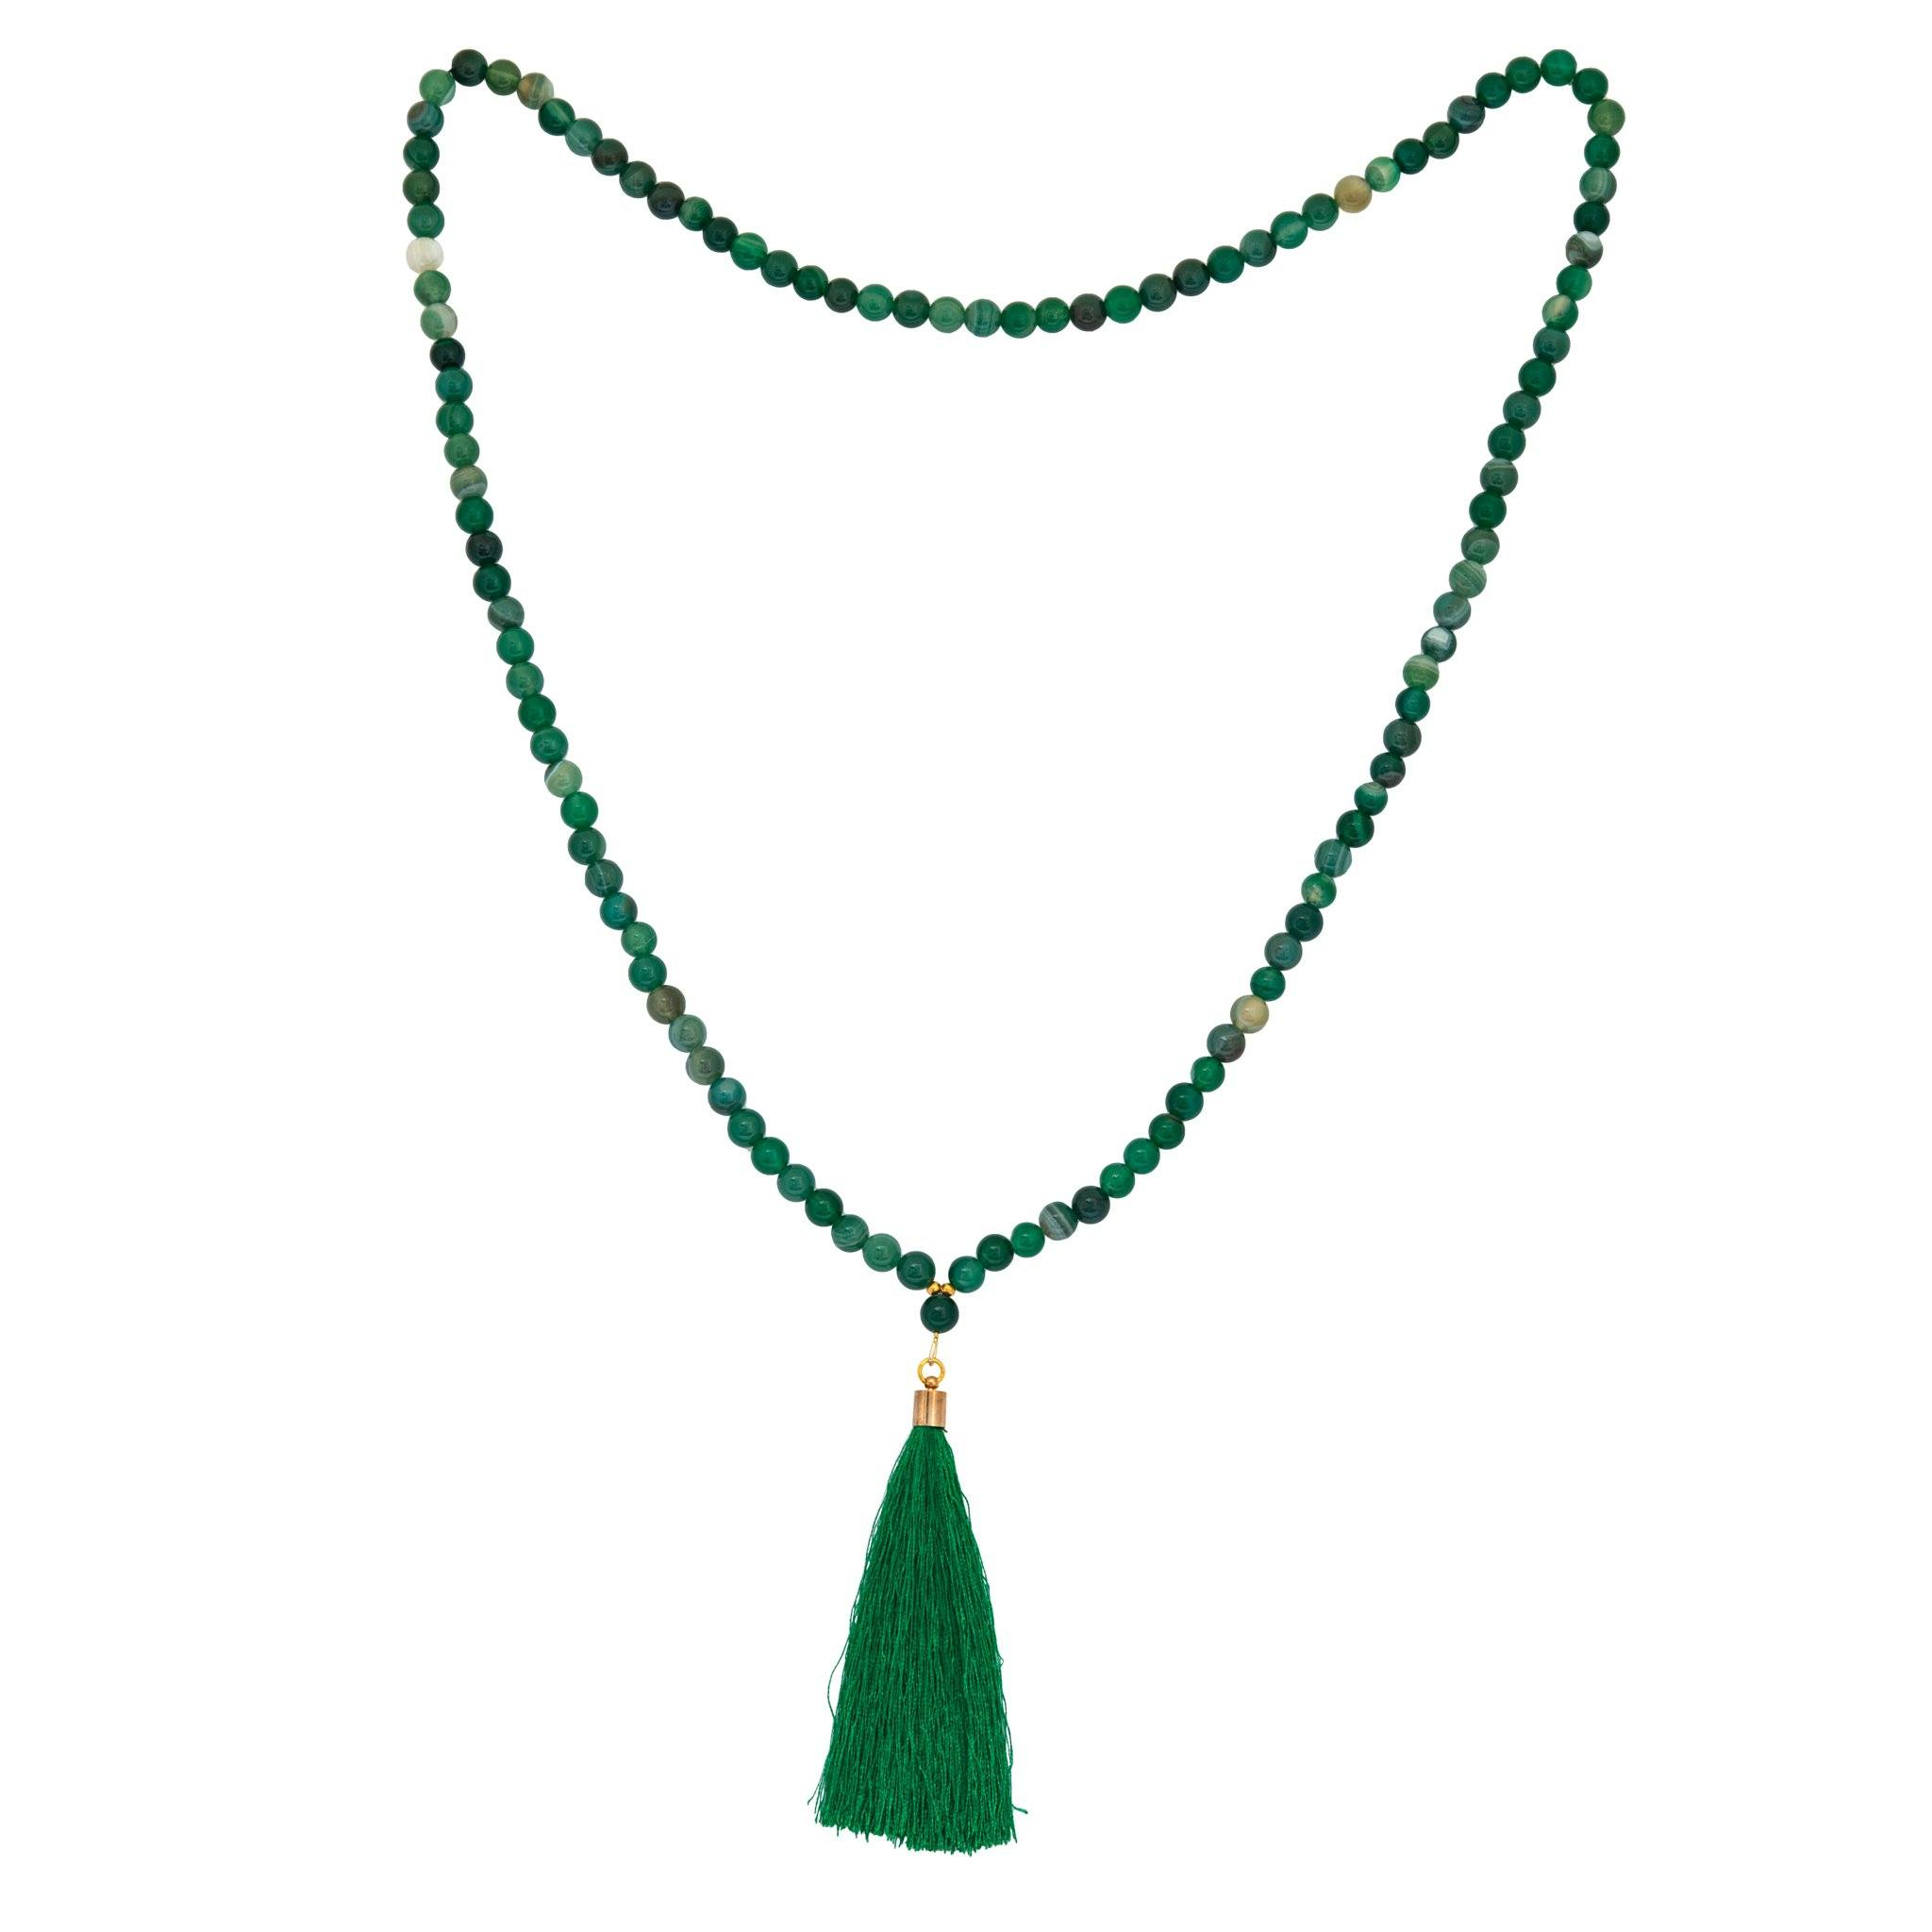 AGA green agate long tassel necklace - MadamSiam